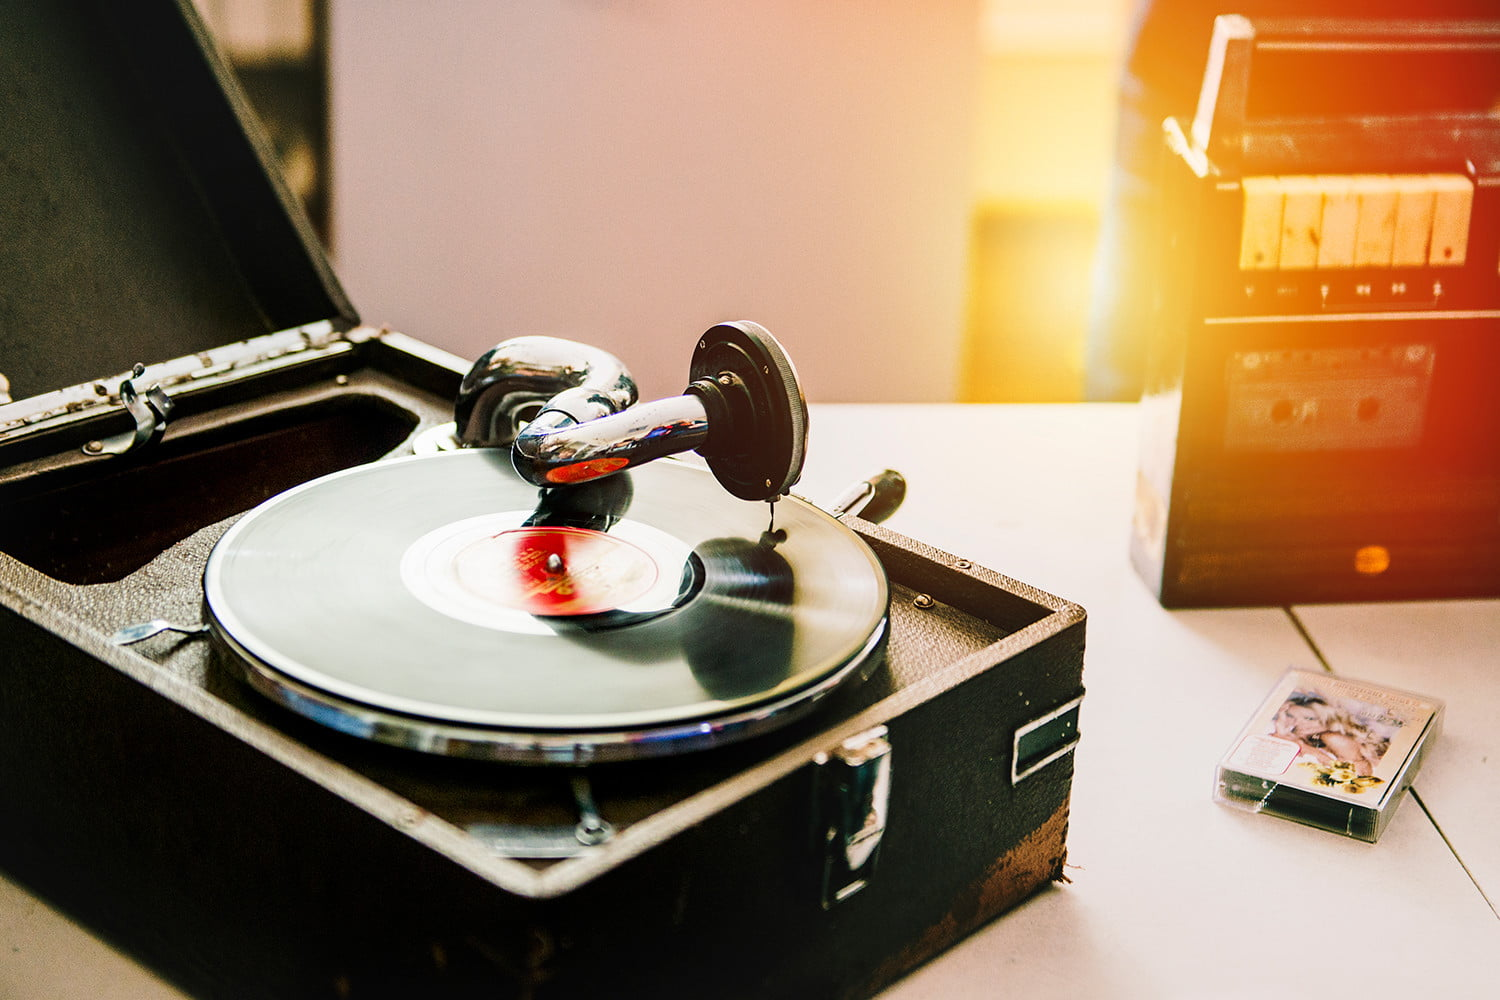 The history of home audio systems